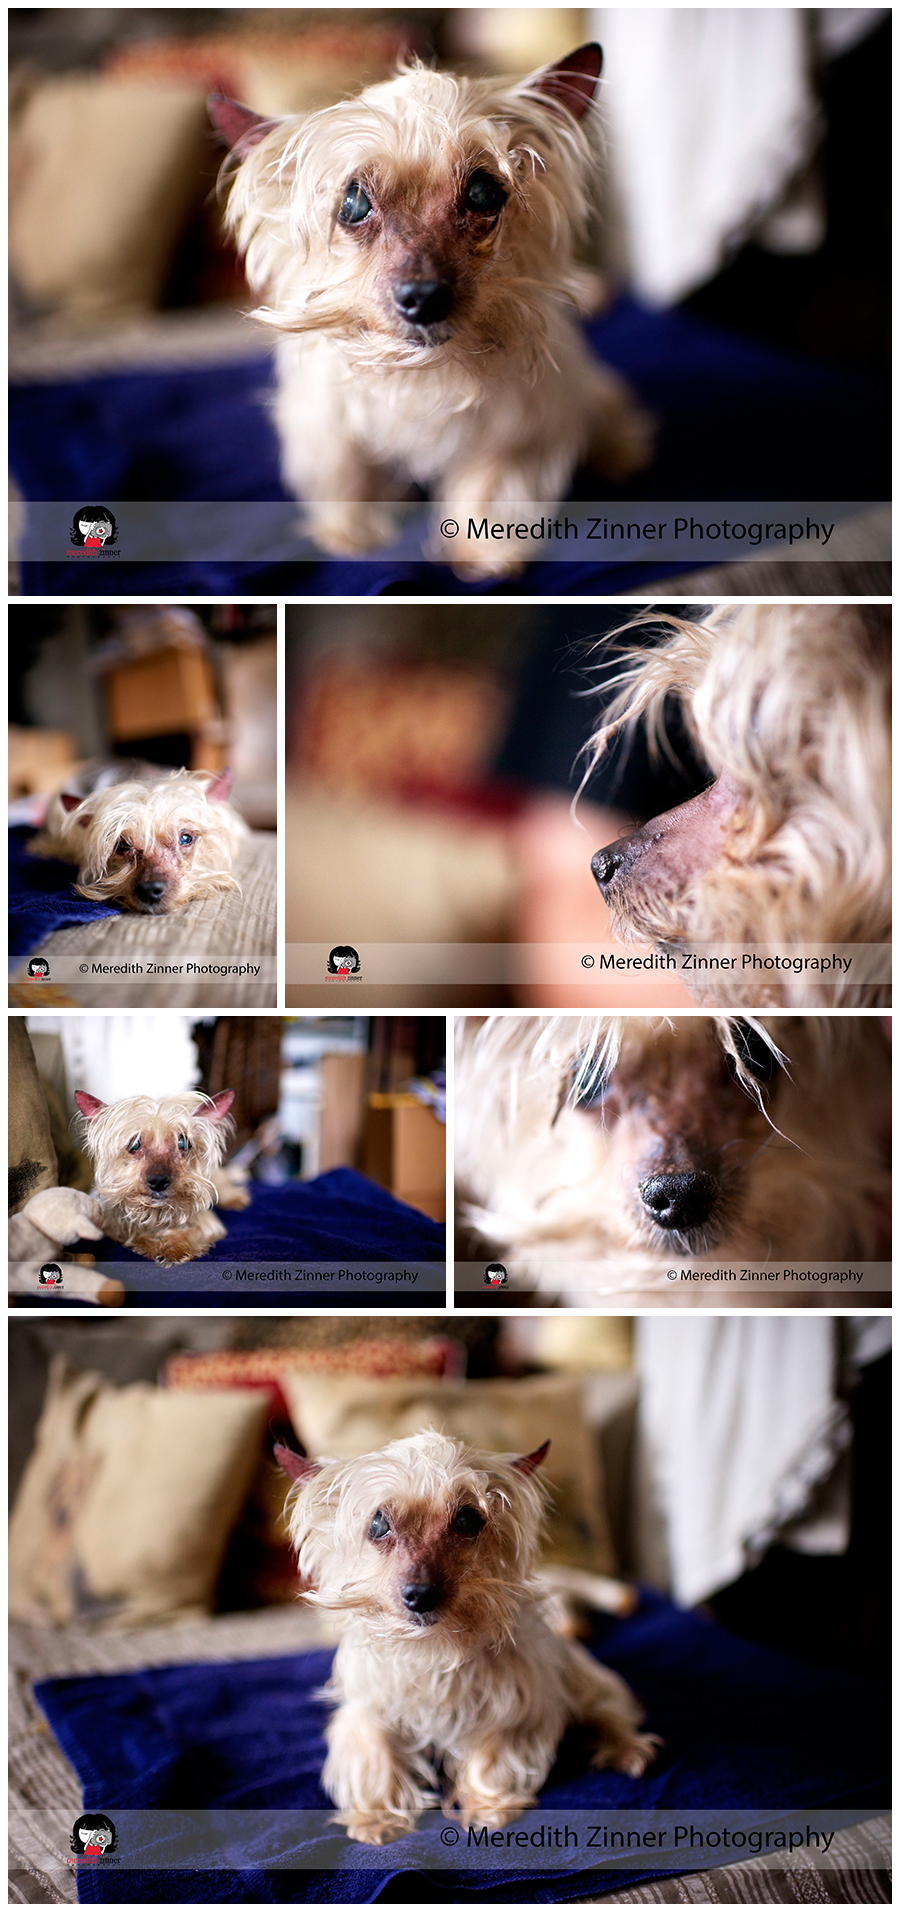 meredith_zinner_photography_dog_dogs_pet_photographer_photography_nyc_brooklyn_